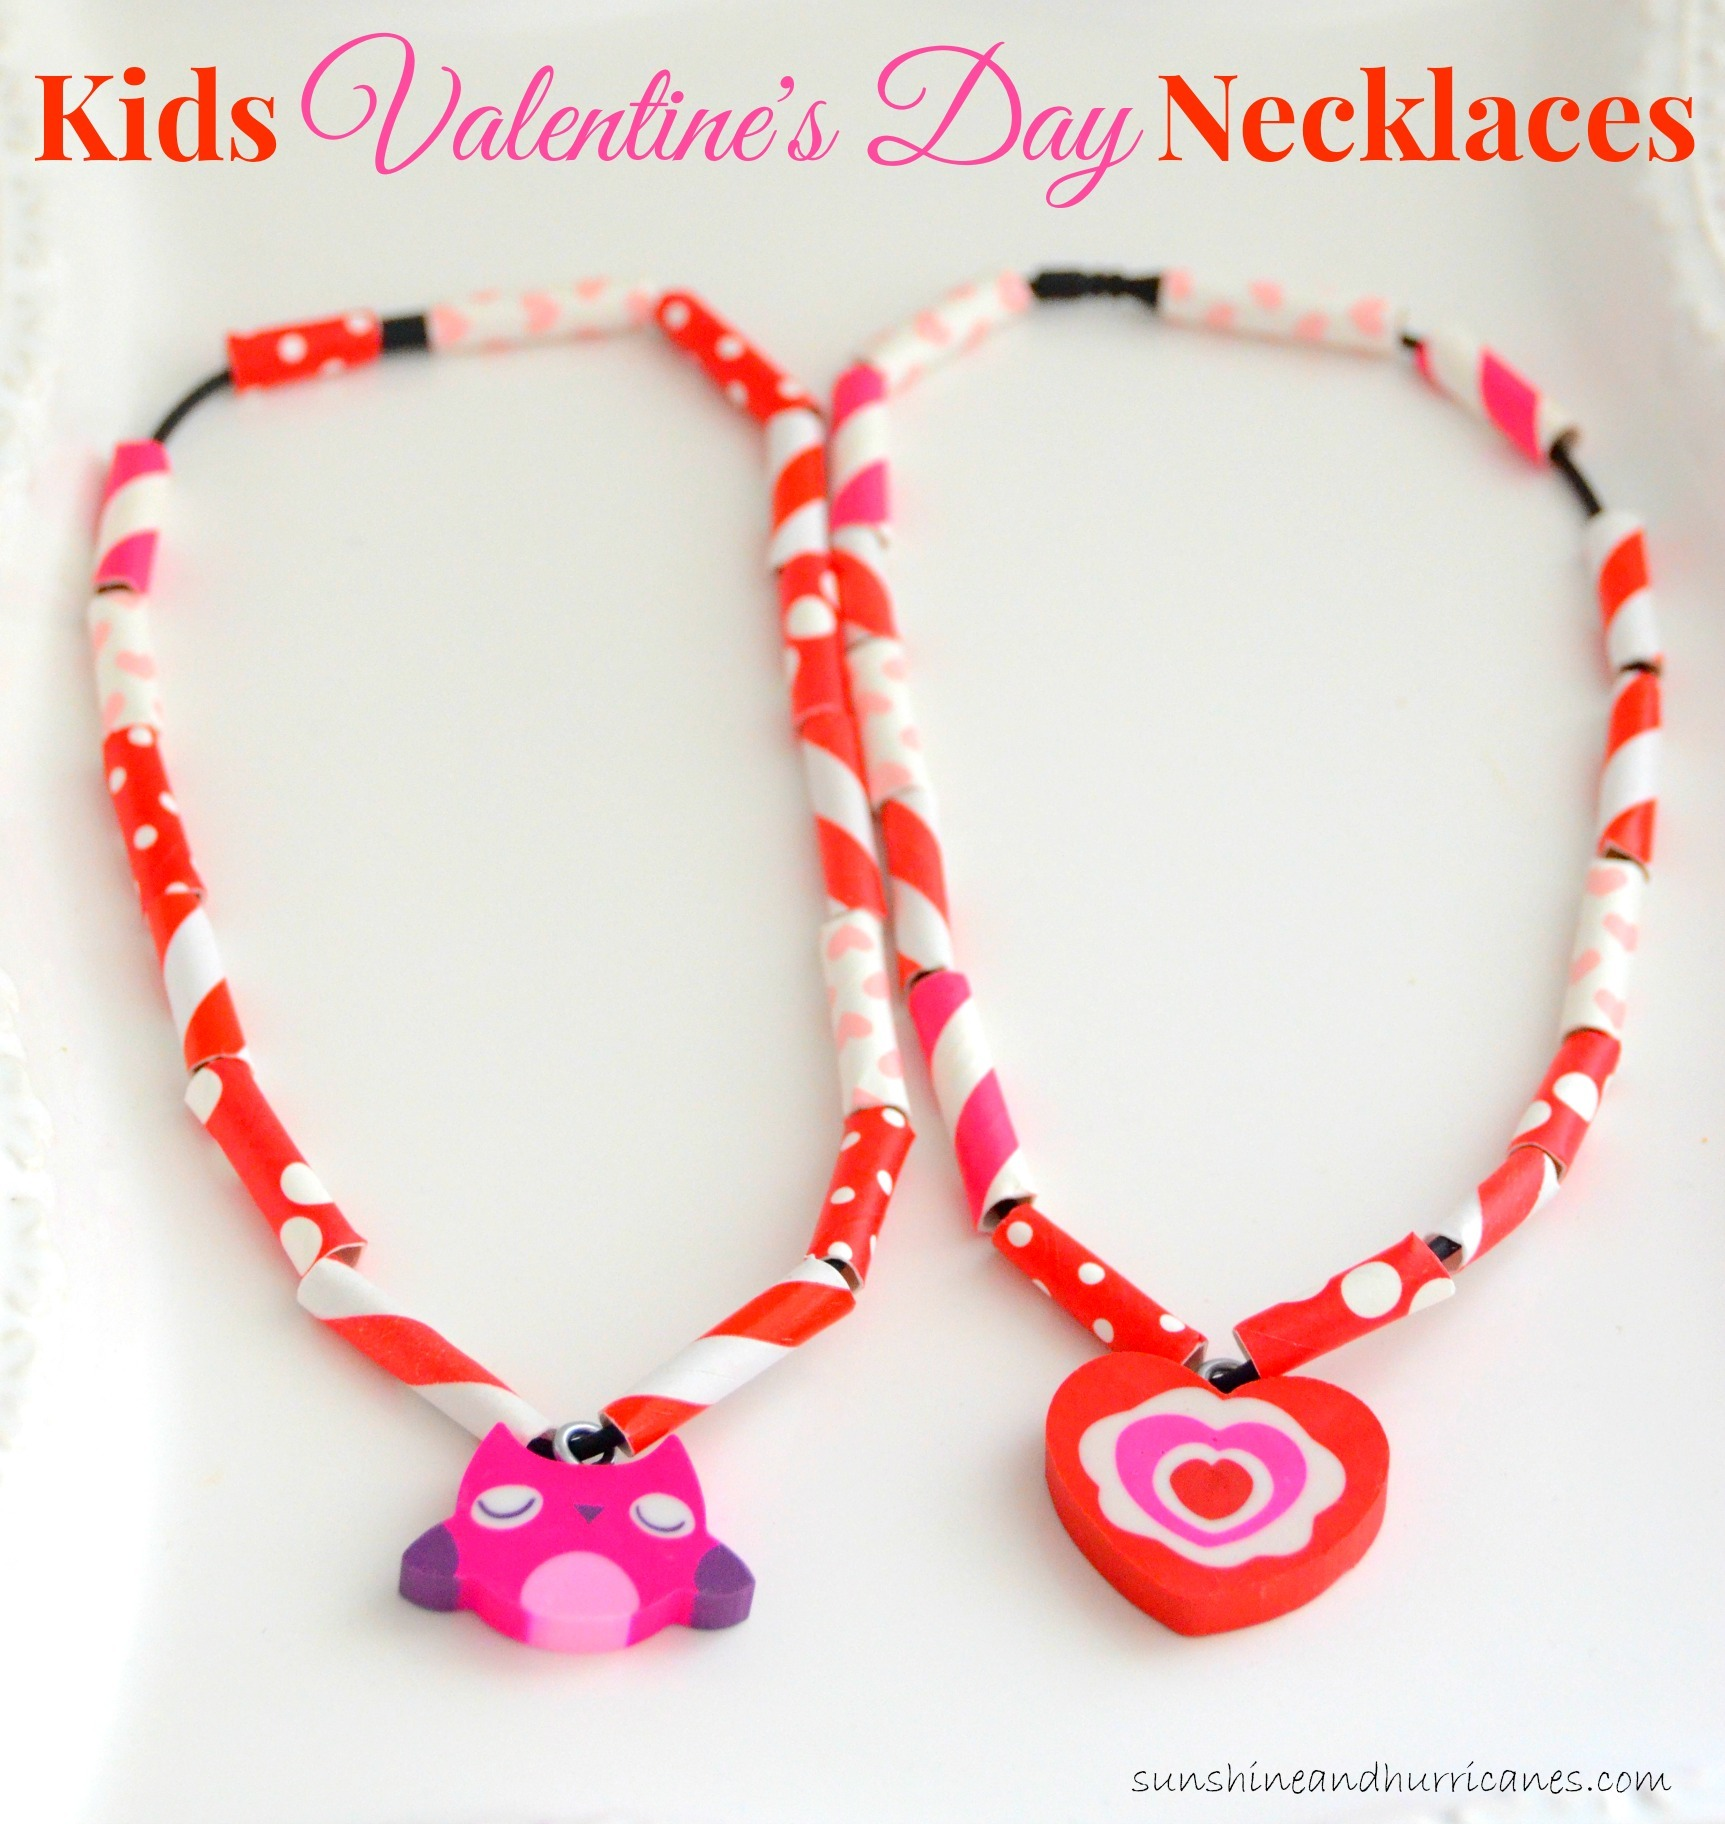 Whether you want a quick Valentine's Craft to do at home with the kiddos or a project for a class Valentine's Day project, these Easy Kids Valentine's Day necklaces are perfect. Budget friendly and easy to make, they are sure to be a hit with the kids!